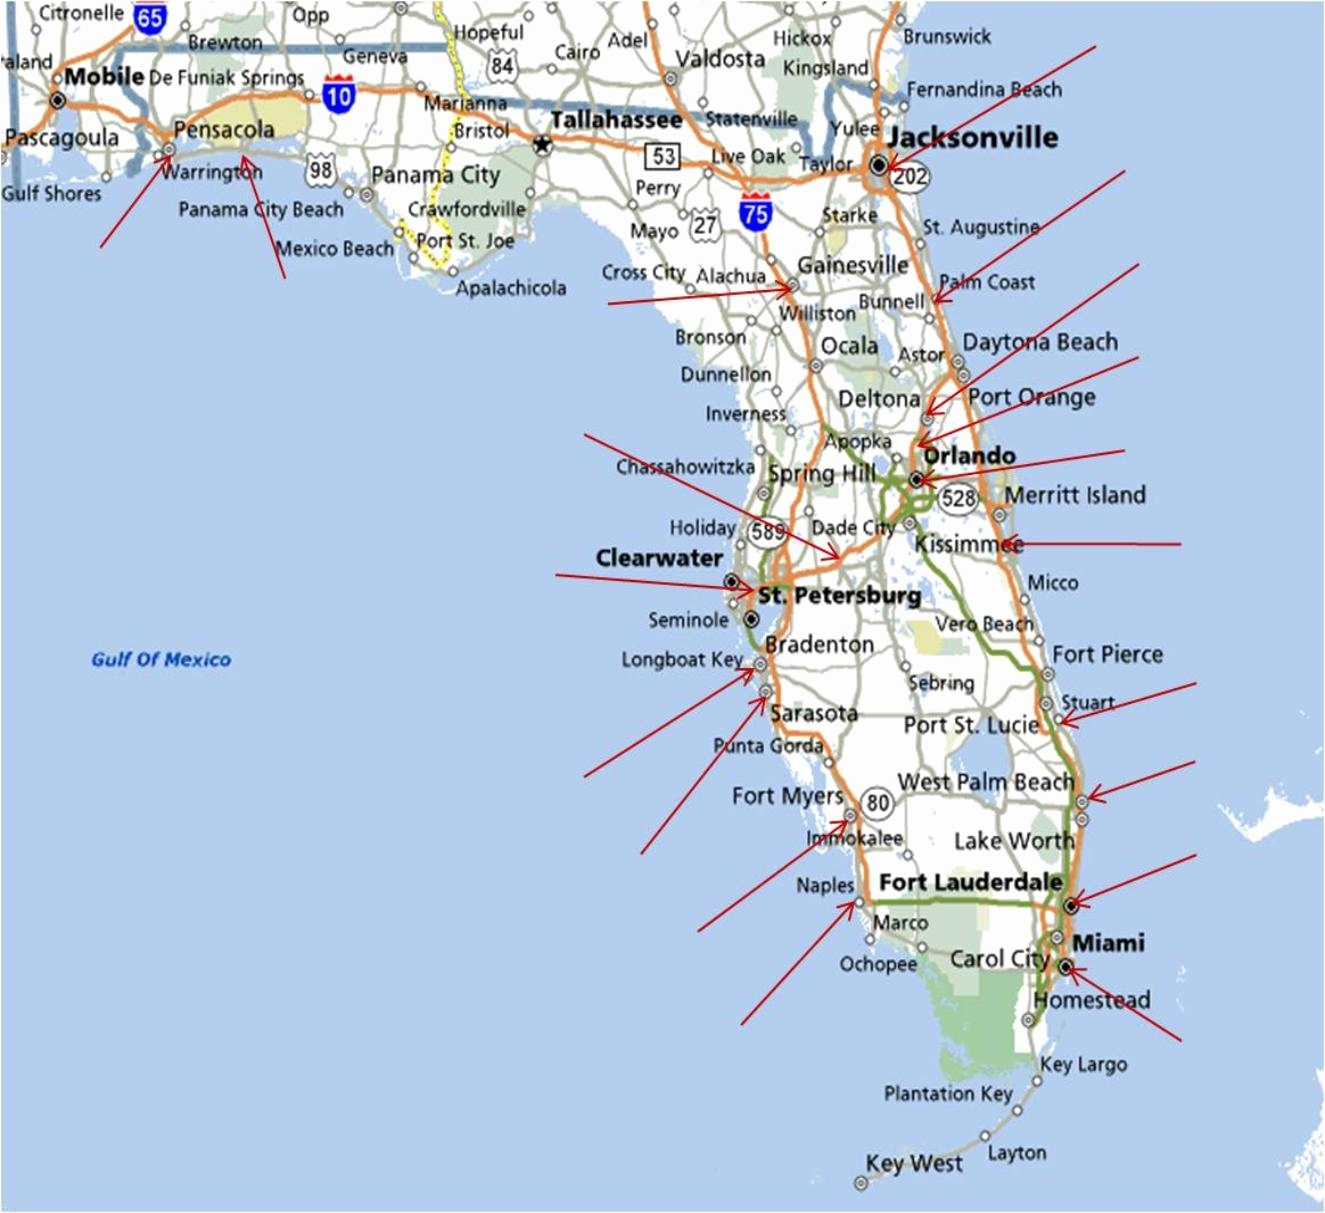 Best East Coast Florida Beaches New Map Florida West Coast Florida - Gulf Coast Cities In Florida Map